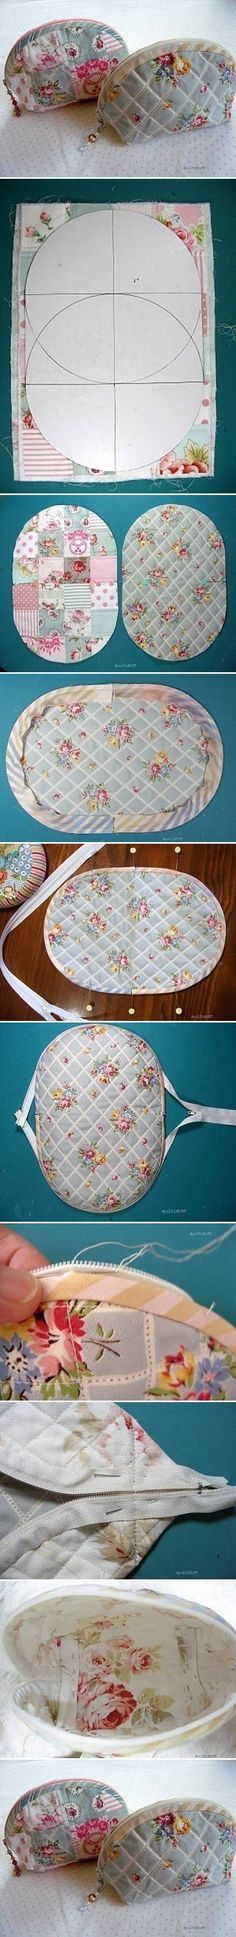 DIY Sew Makeup Bag